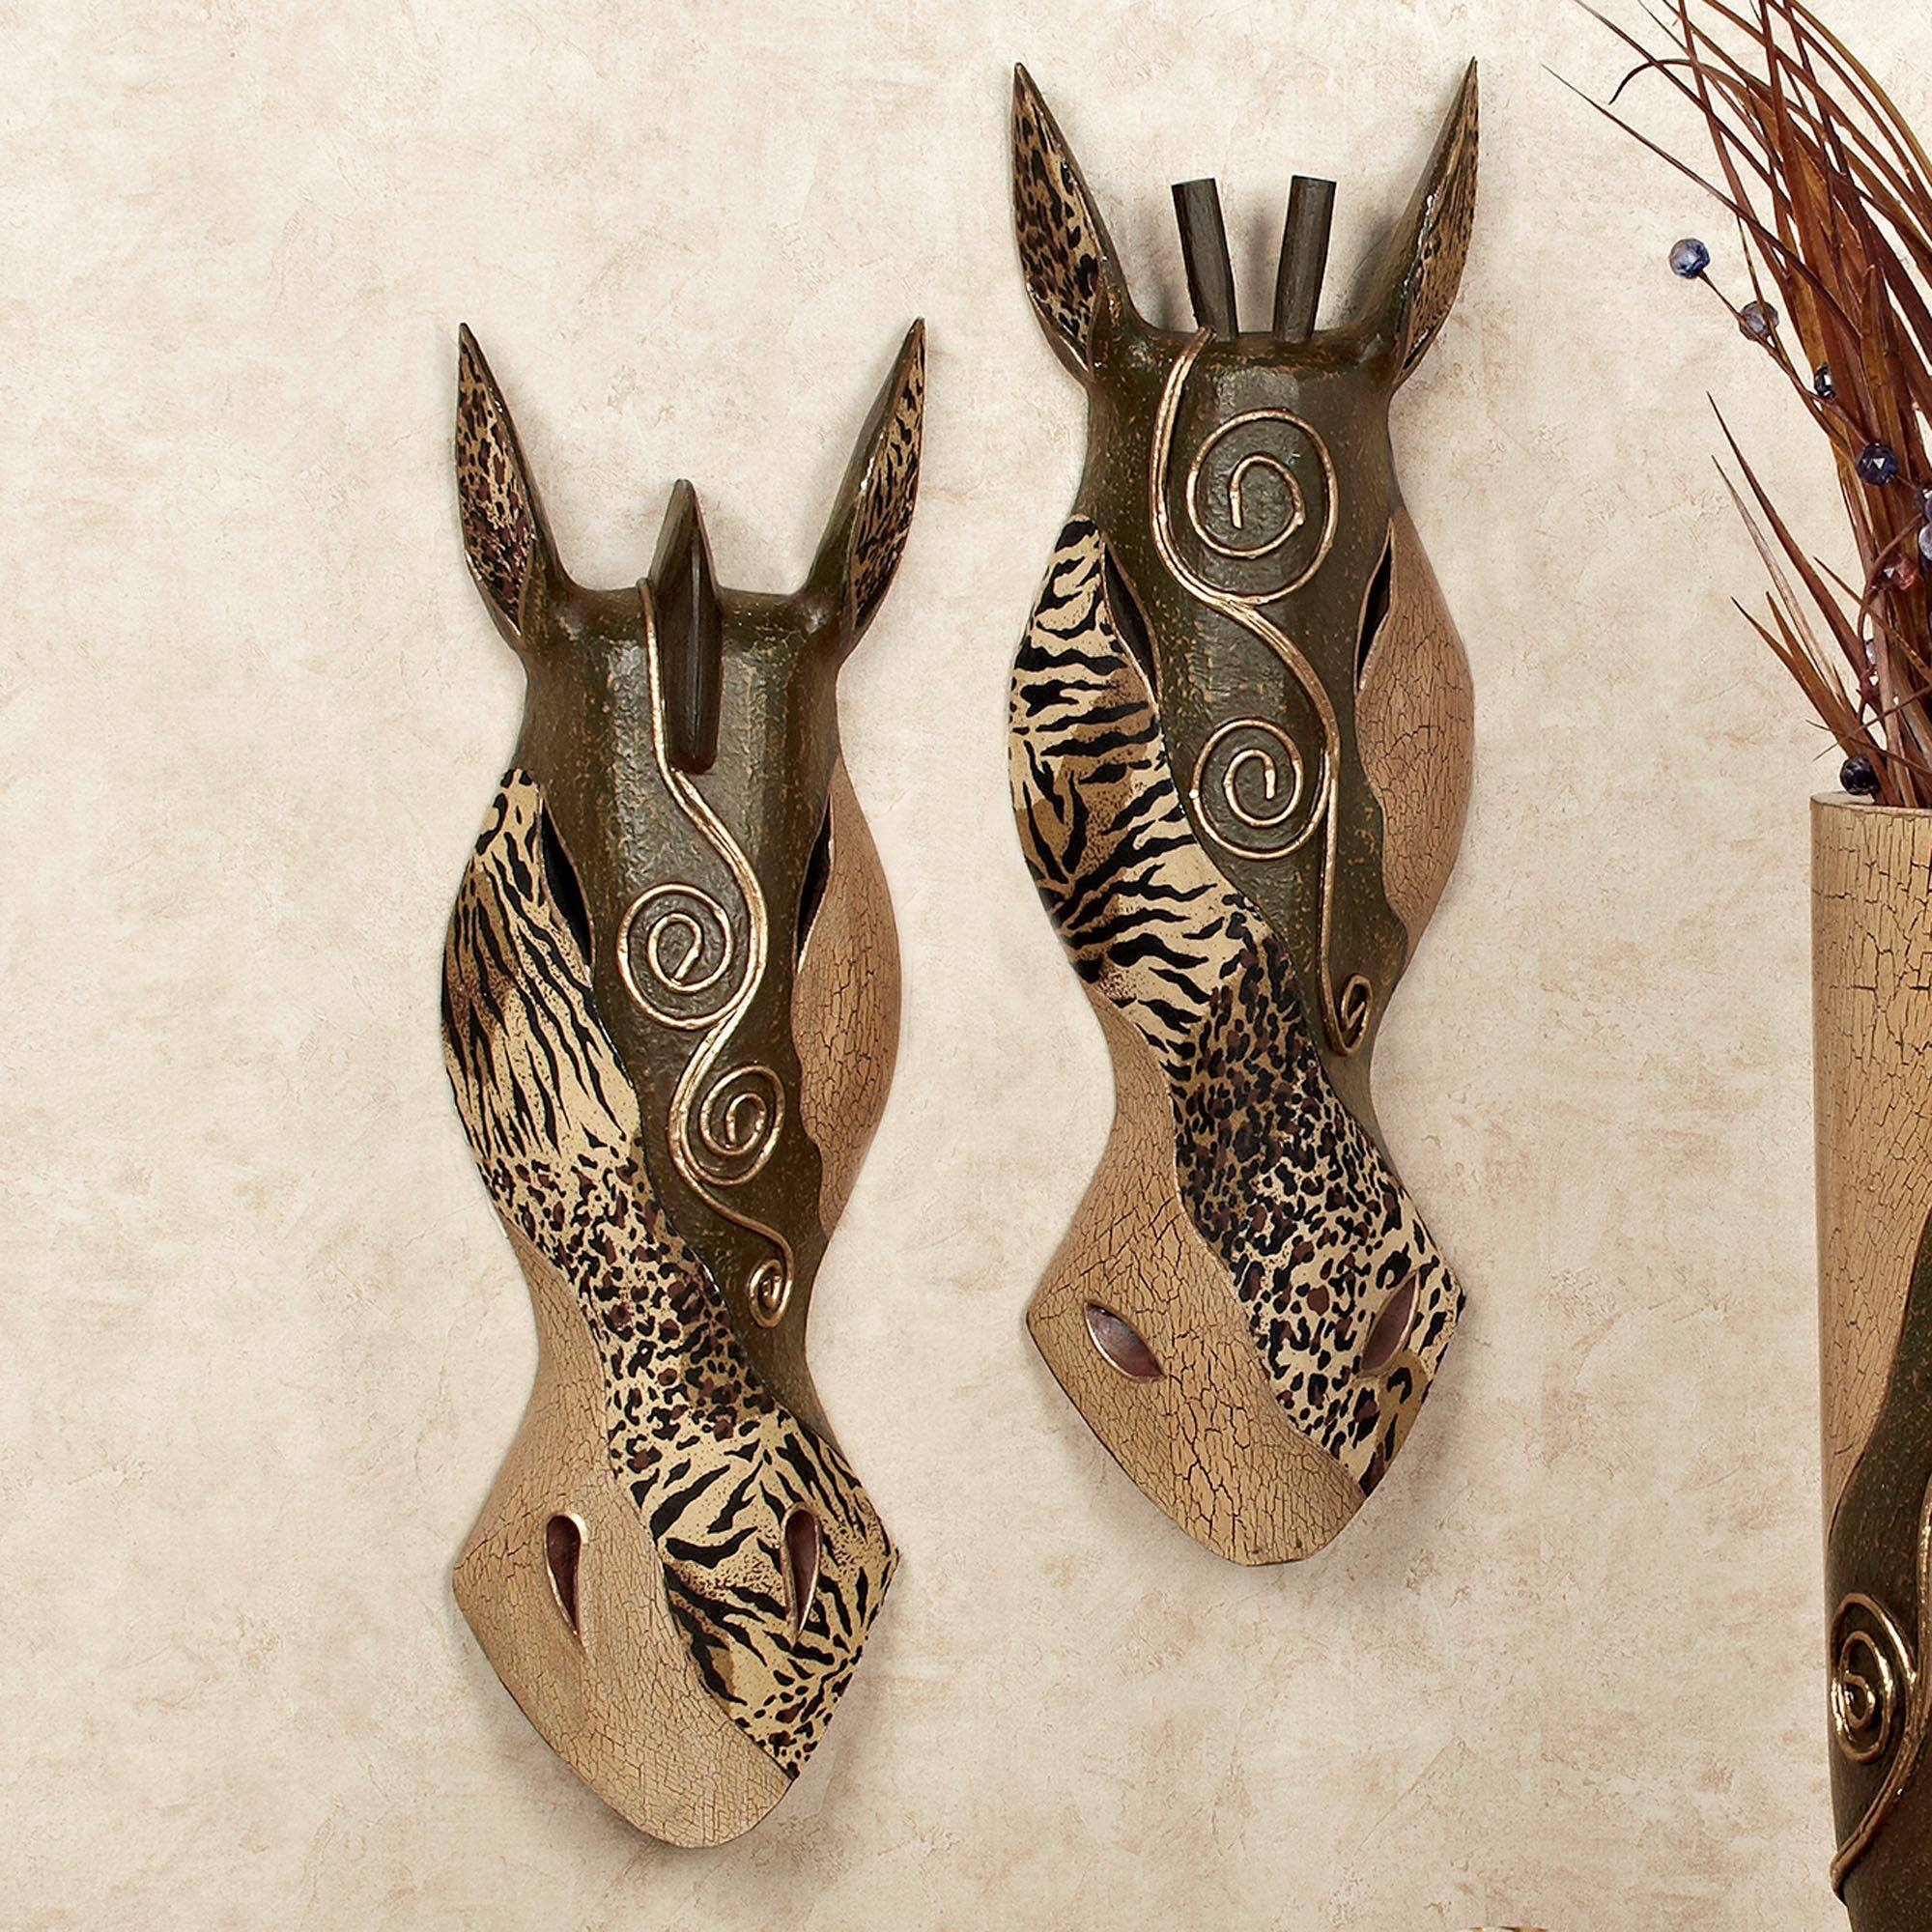 Primal Animal Print Mask Wall Art Set Regarding Most Up To Date Metal Animal Wall Art (View 6 of 20)